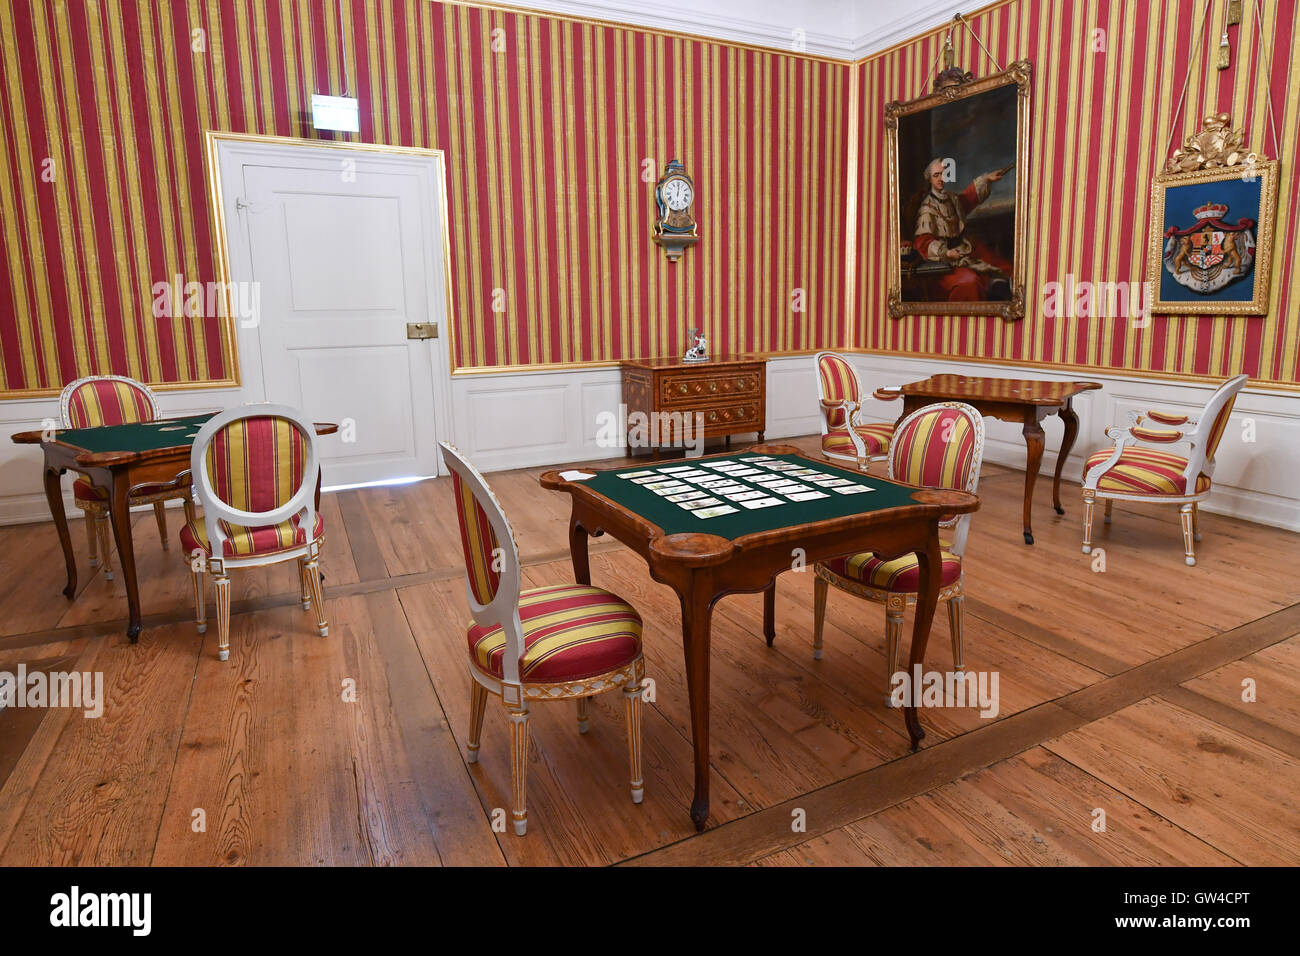 Schwetzingen, Germany. 9th Sep, 2016. View into the playroom of Schwetzingen Palace in Schwetzingen, Germany, 9 - Stock Image